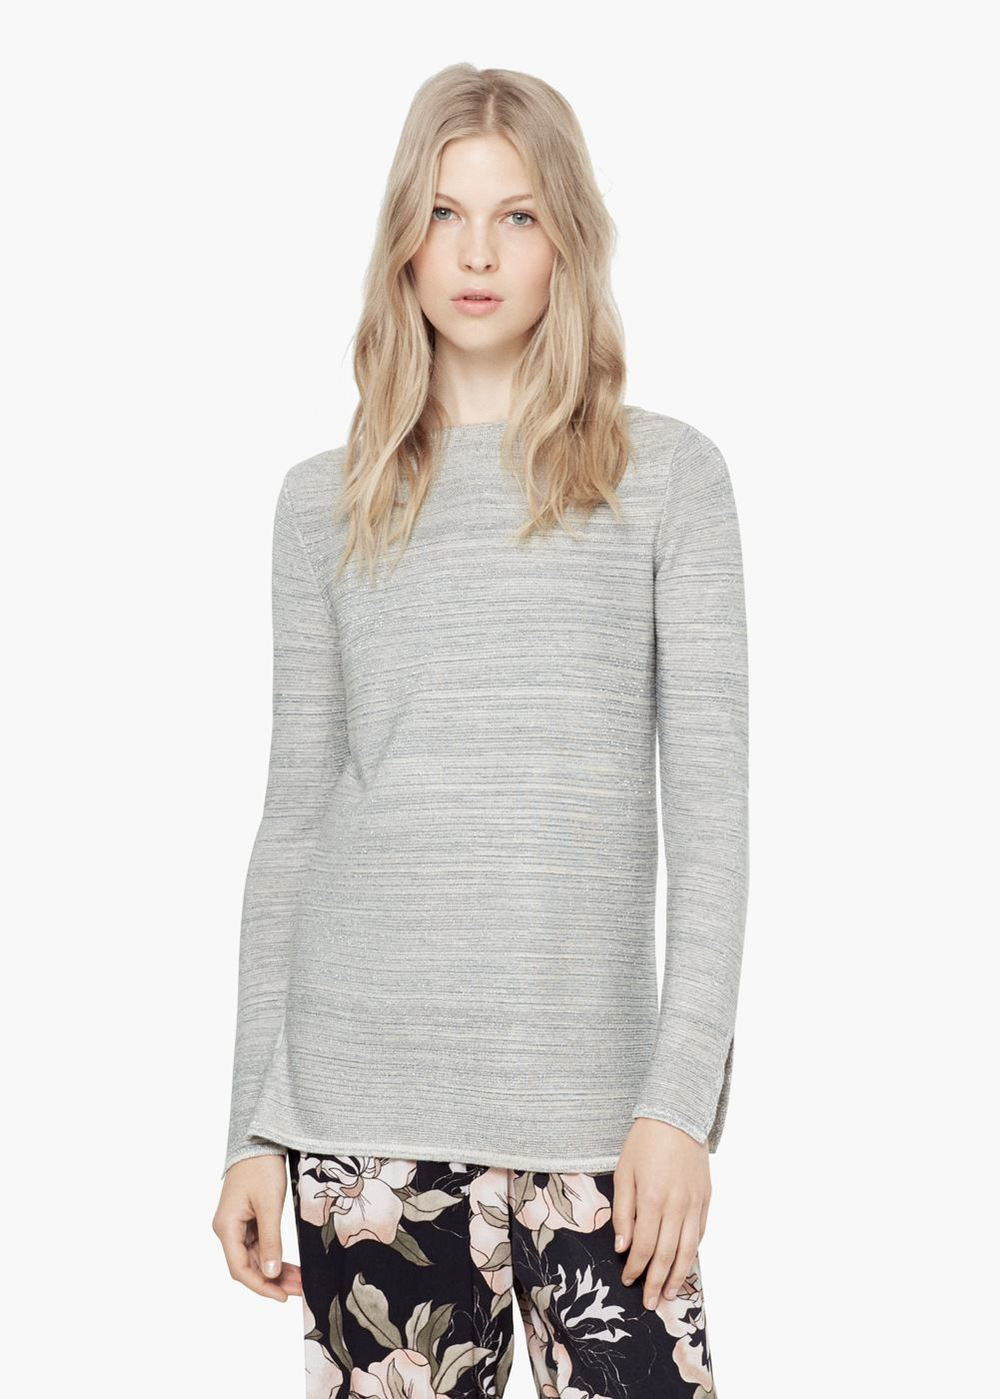 Metallic Finish Sweater €29.95 R EF. 53045693